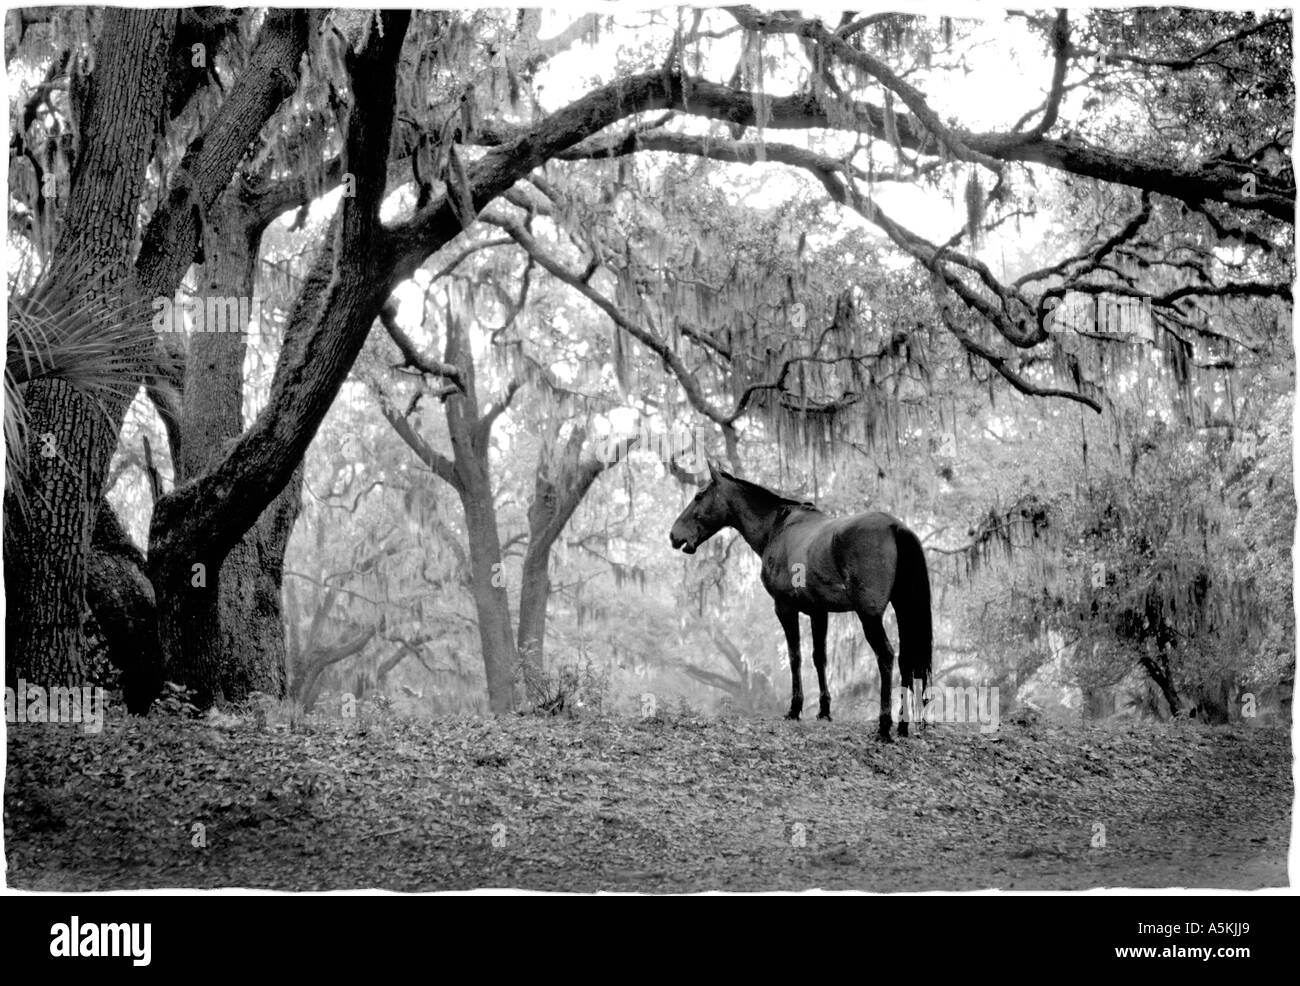 A Wild Horse Stands Under A Meadow Of Live Oak Trees In This Stock Photo Alamy